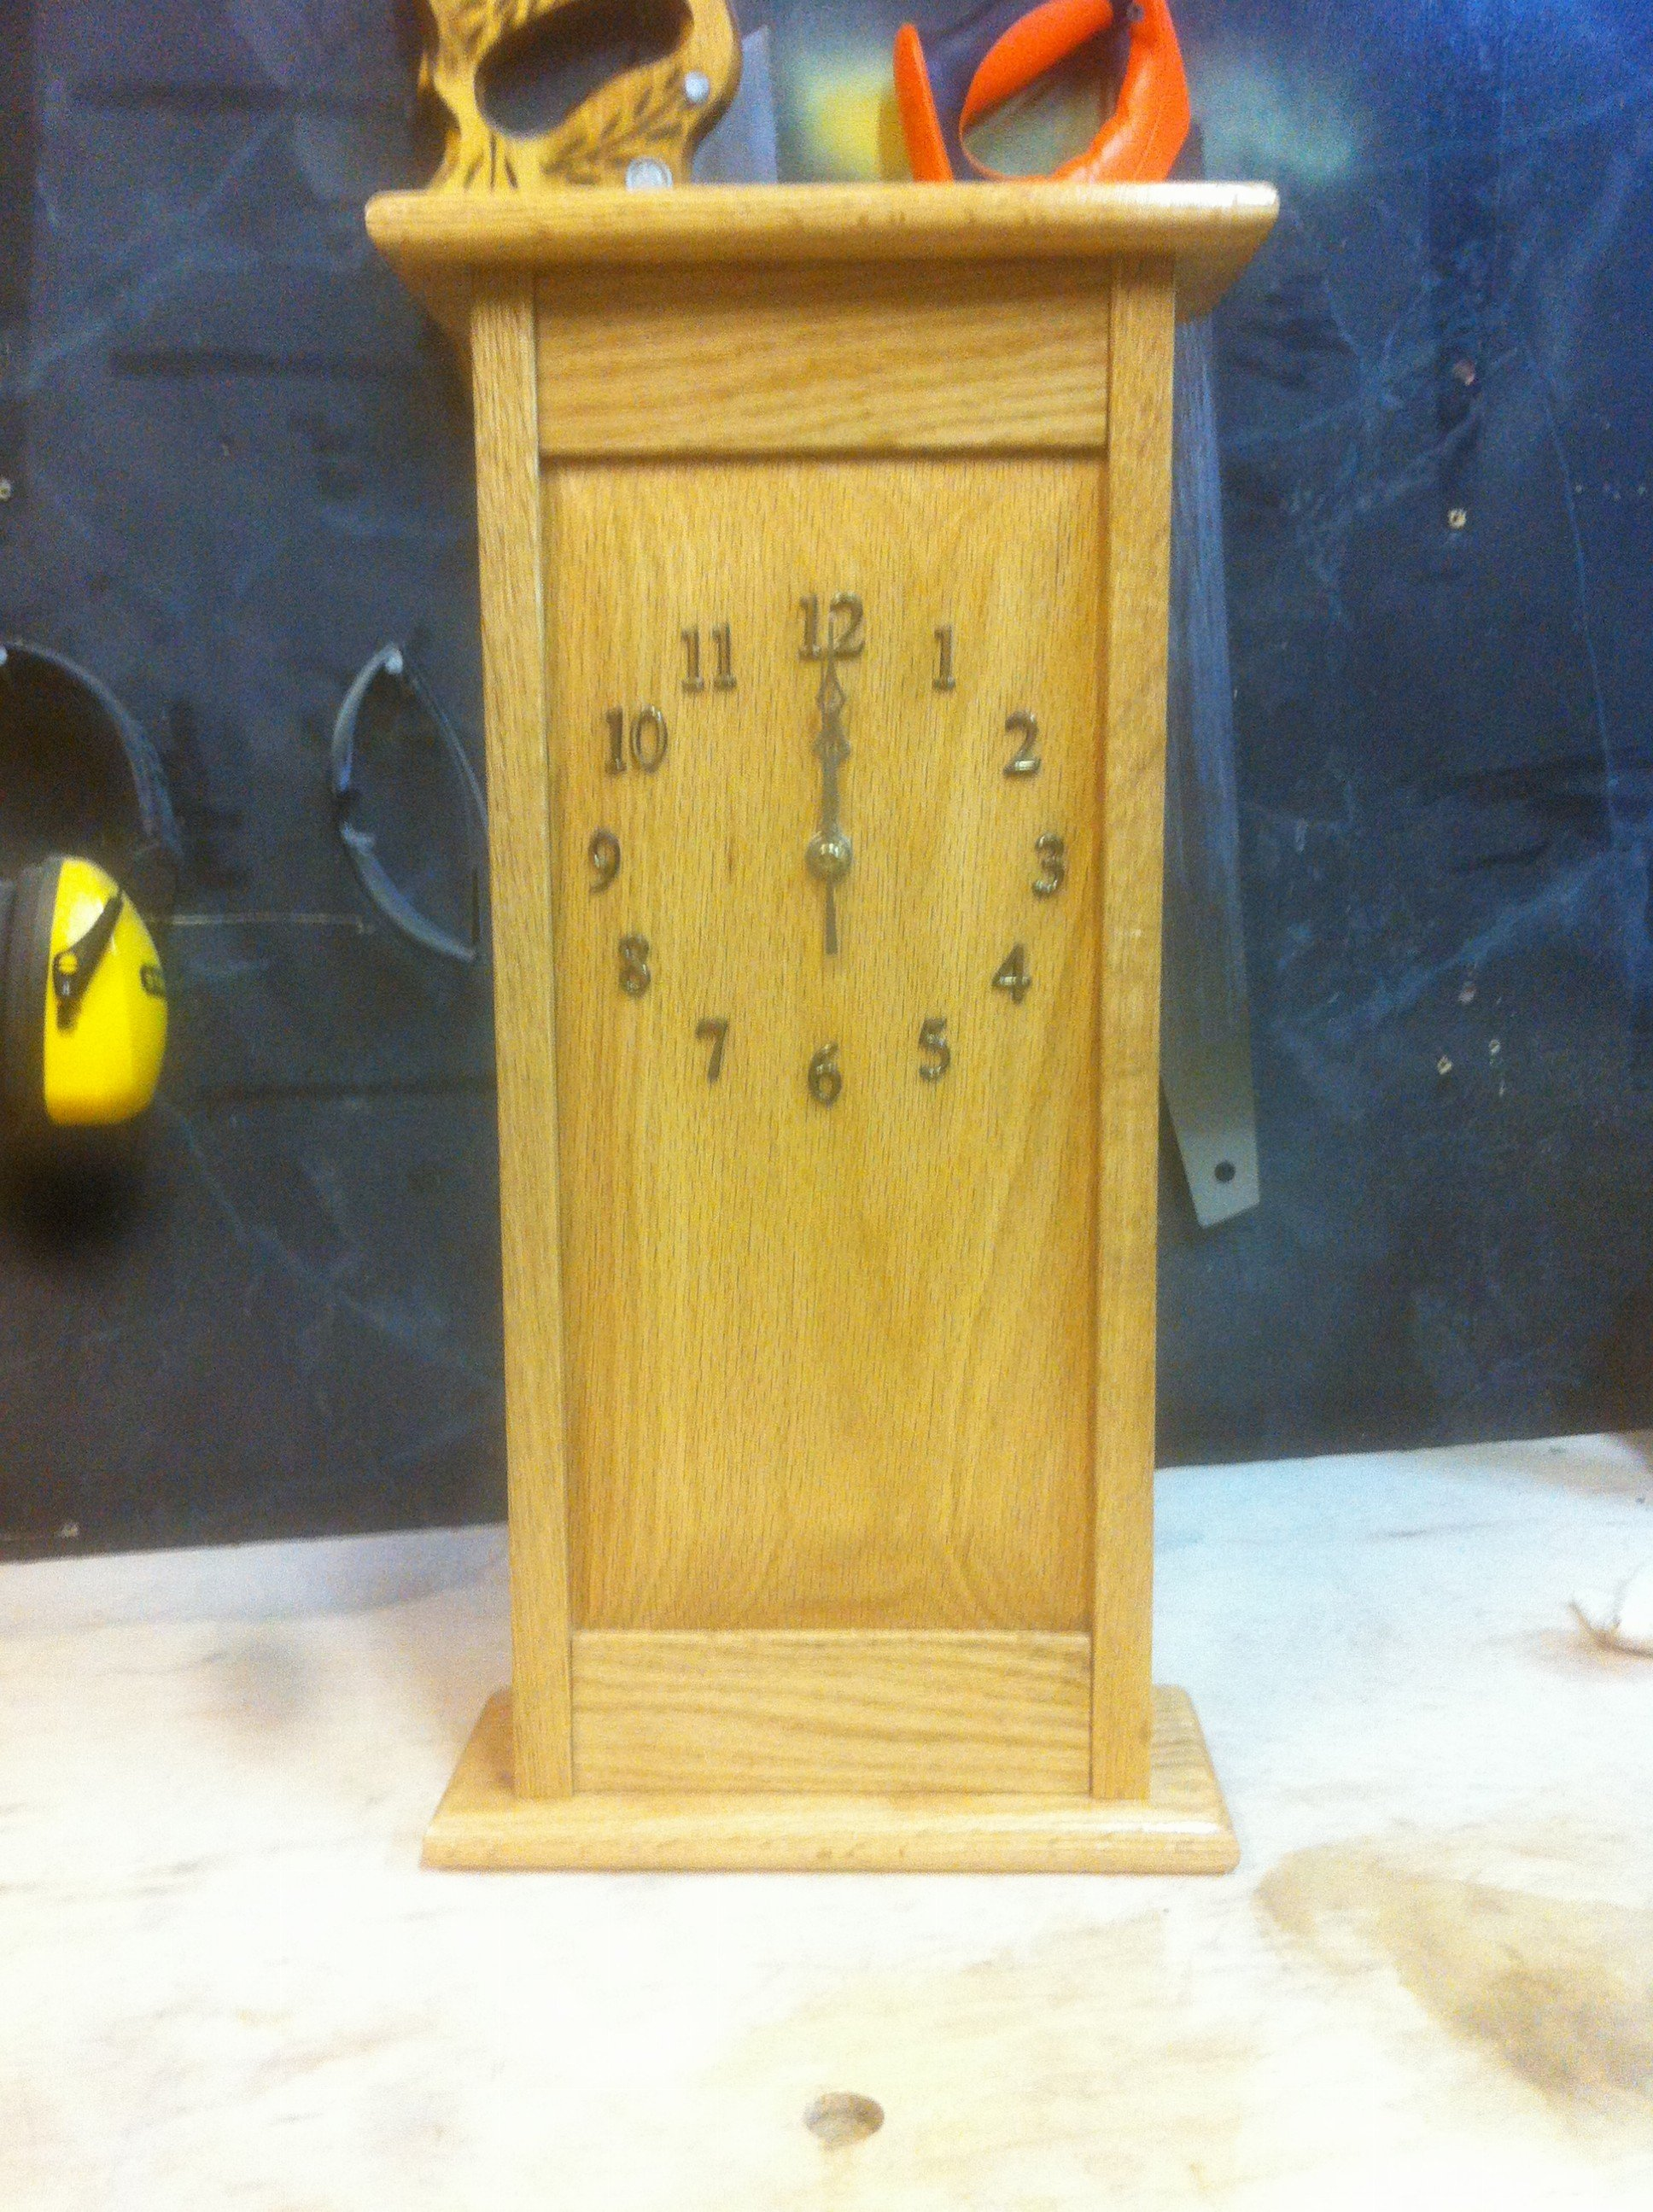 Wallclock by thiel2